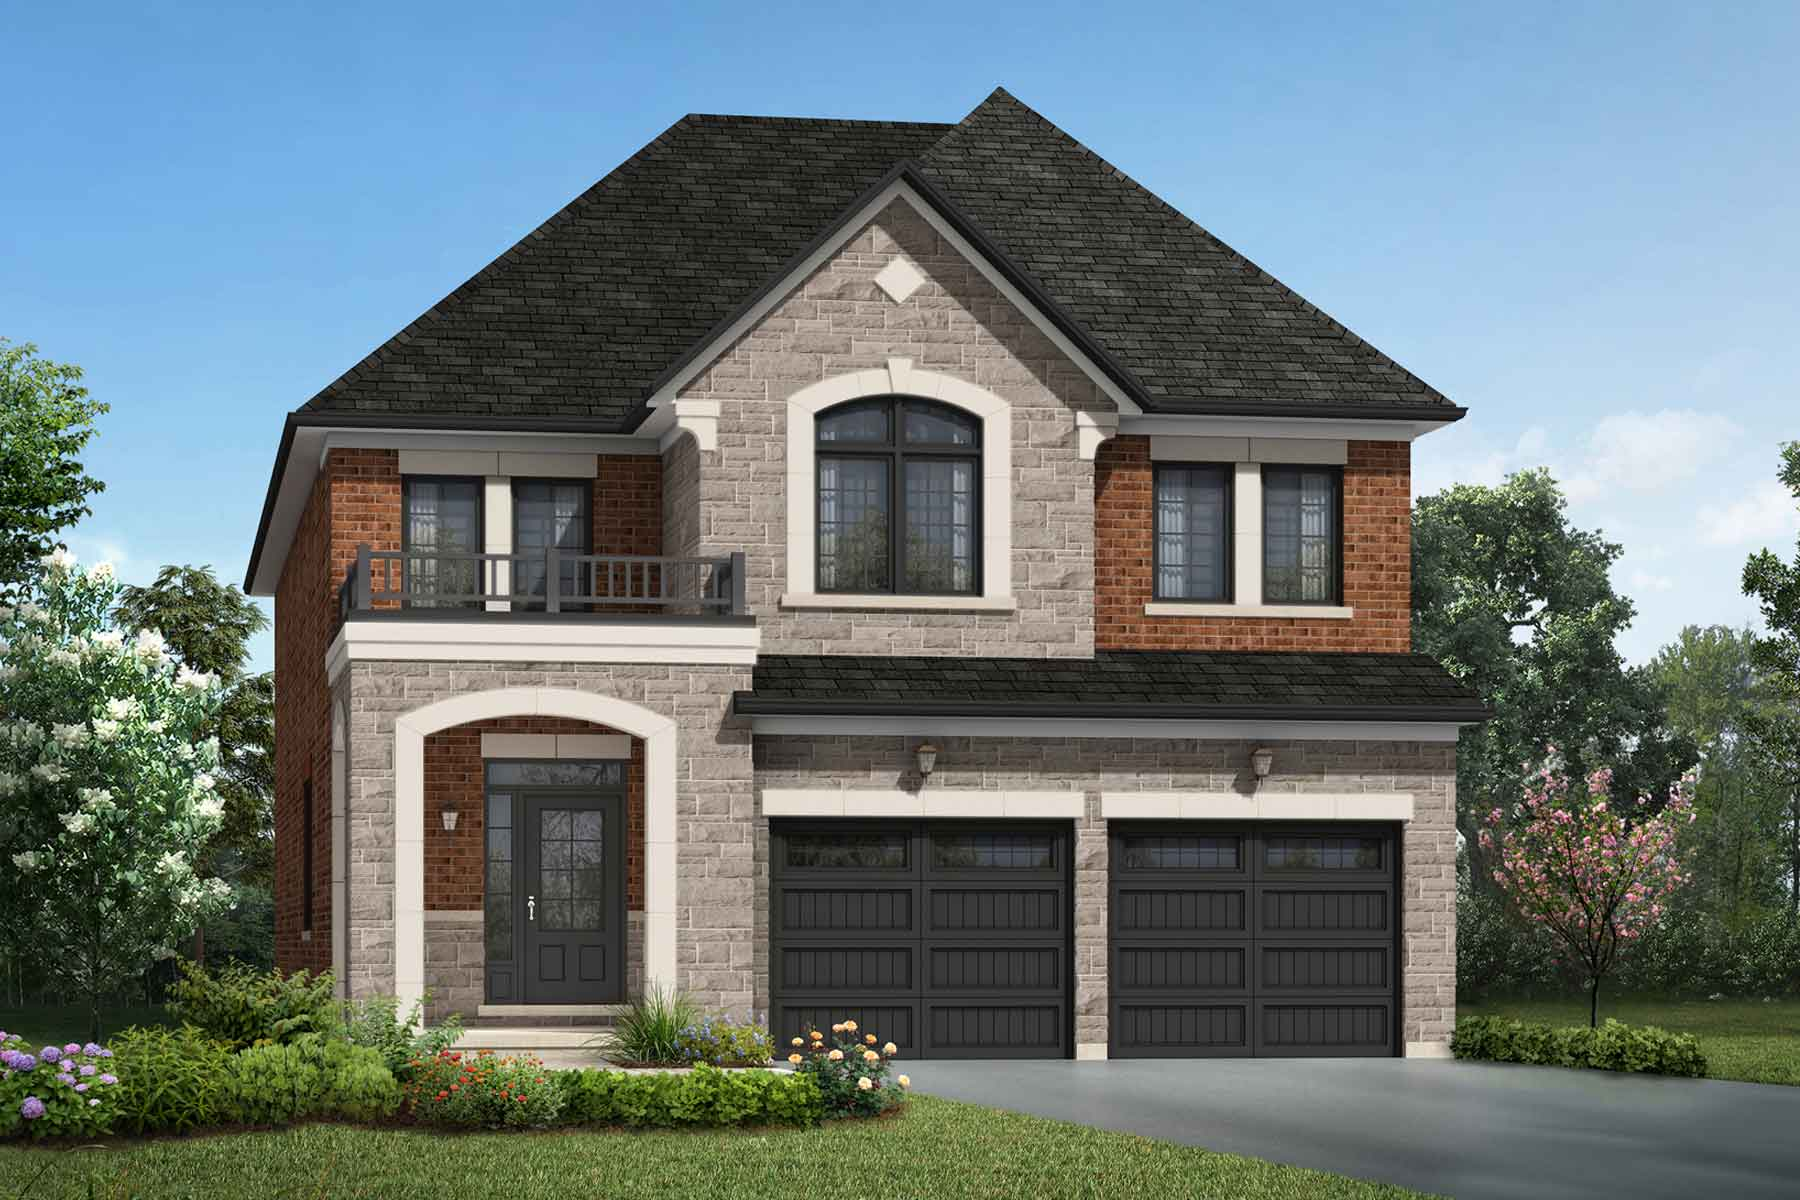 Lupin Corner Plan englishmanor_seatonwhitevale_brockridge_main at Seaton Whitevale in Pickering Ontario by Mattamy Homes